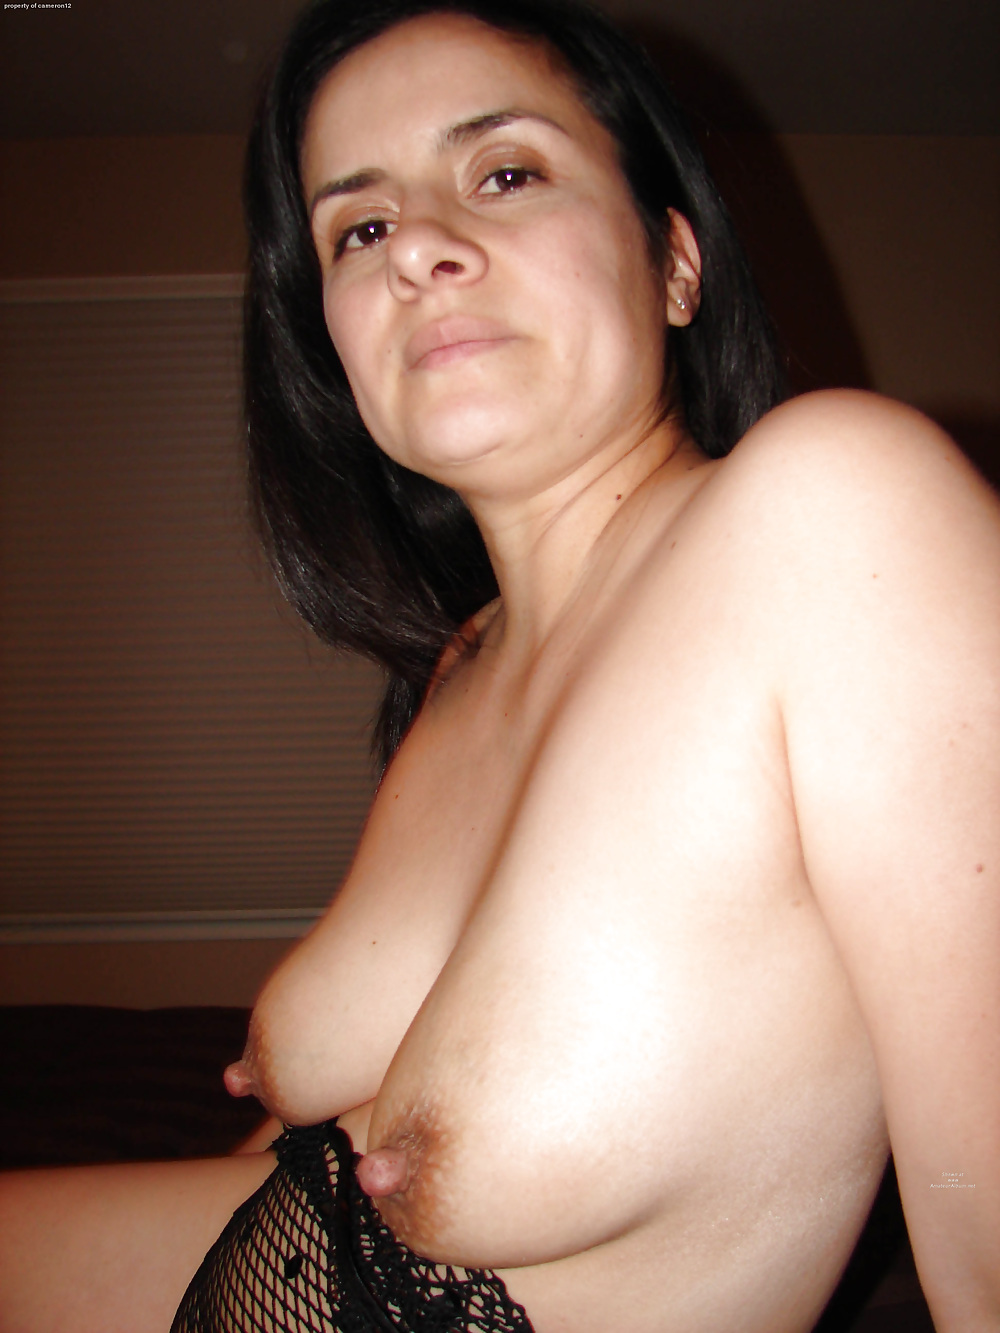 Mature Porn Pictures: Horny and hot more moms